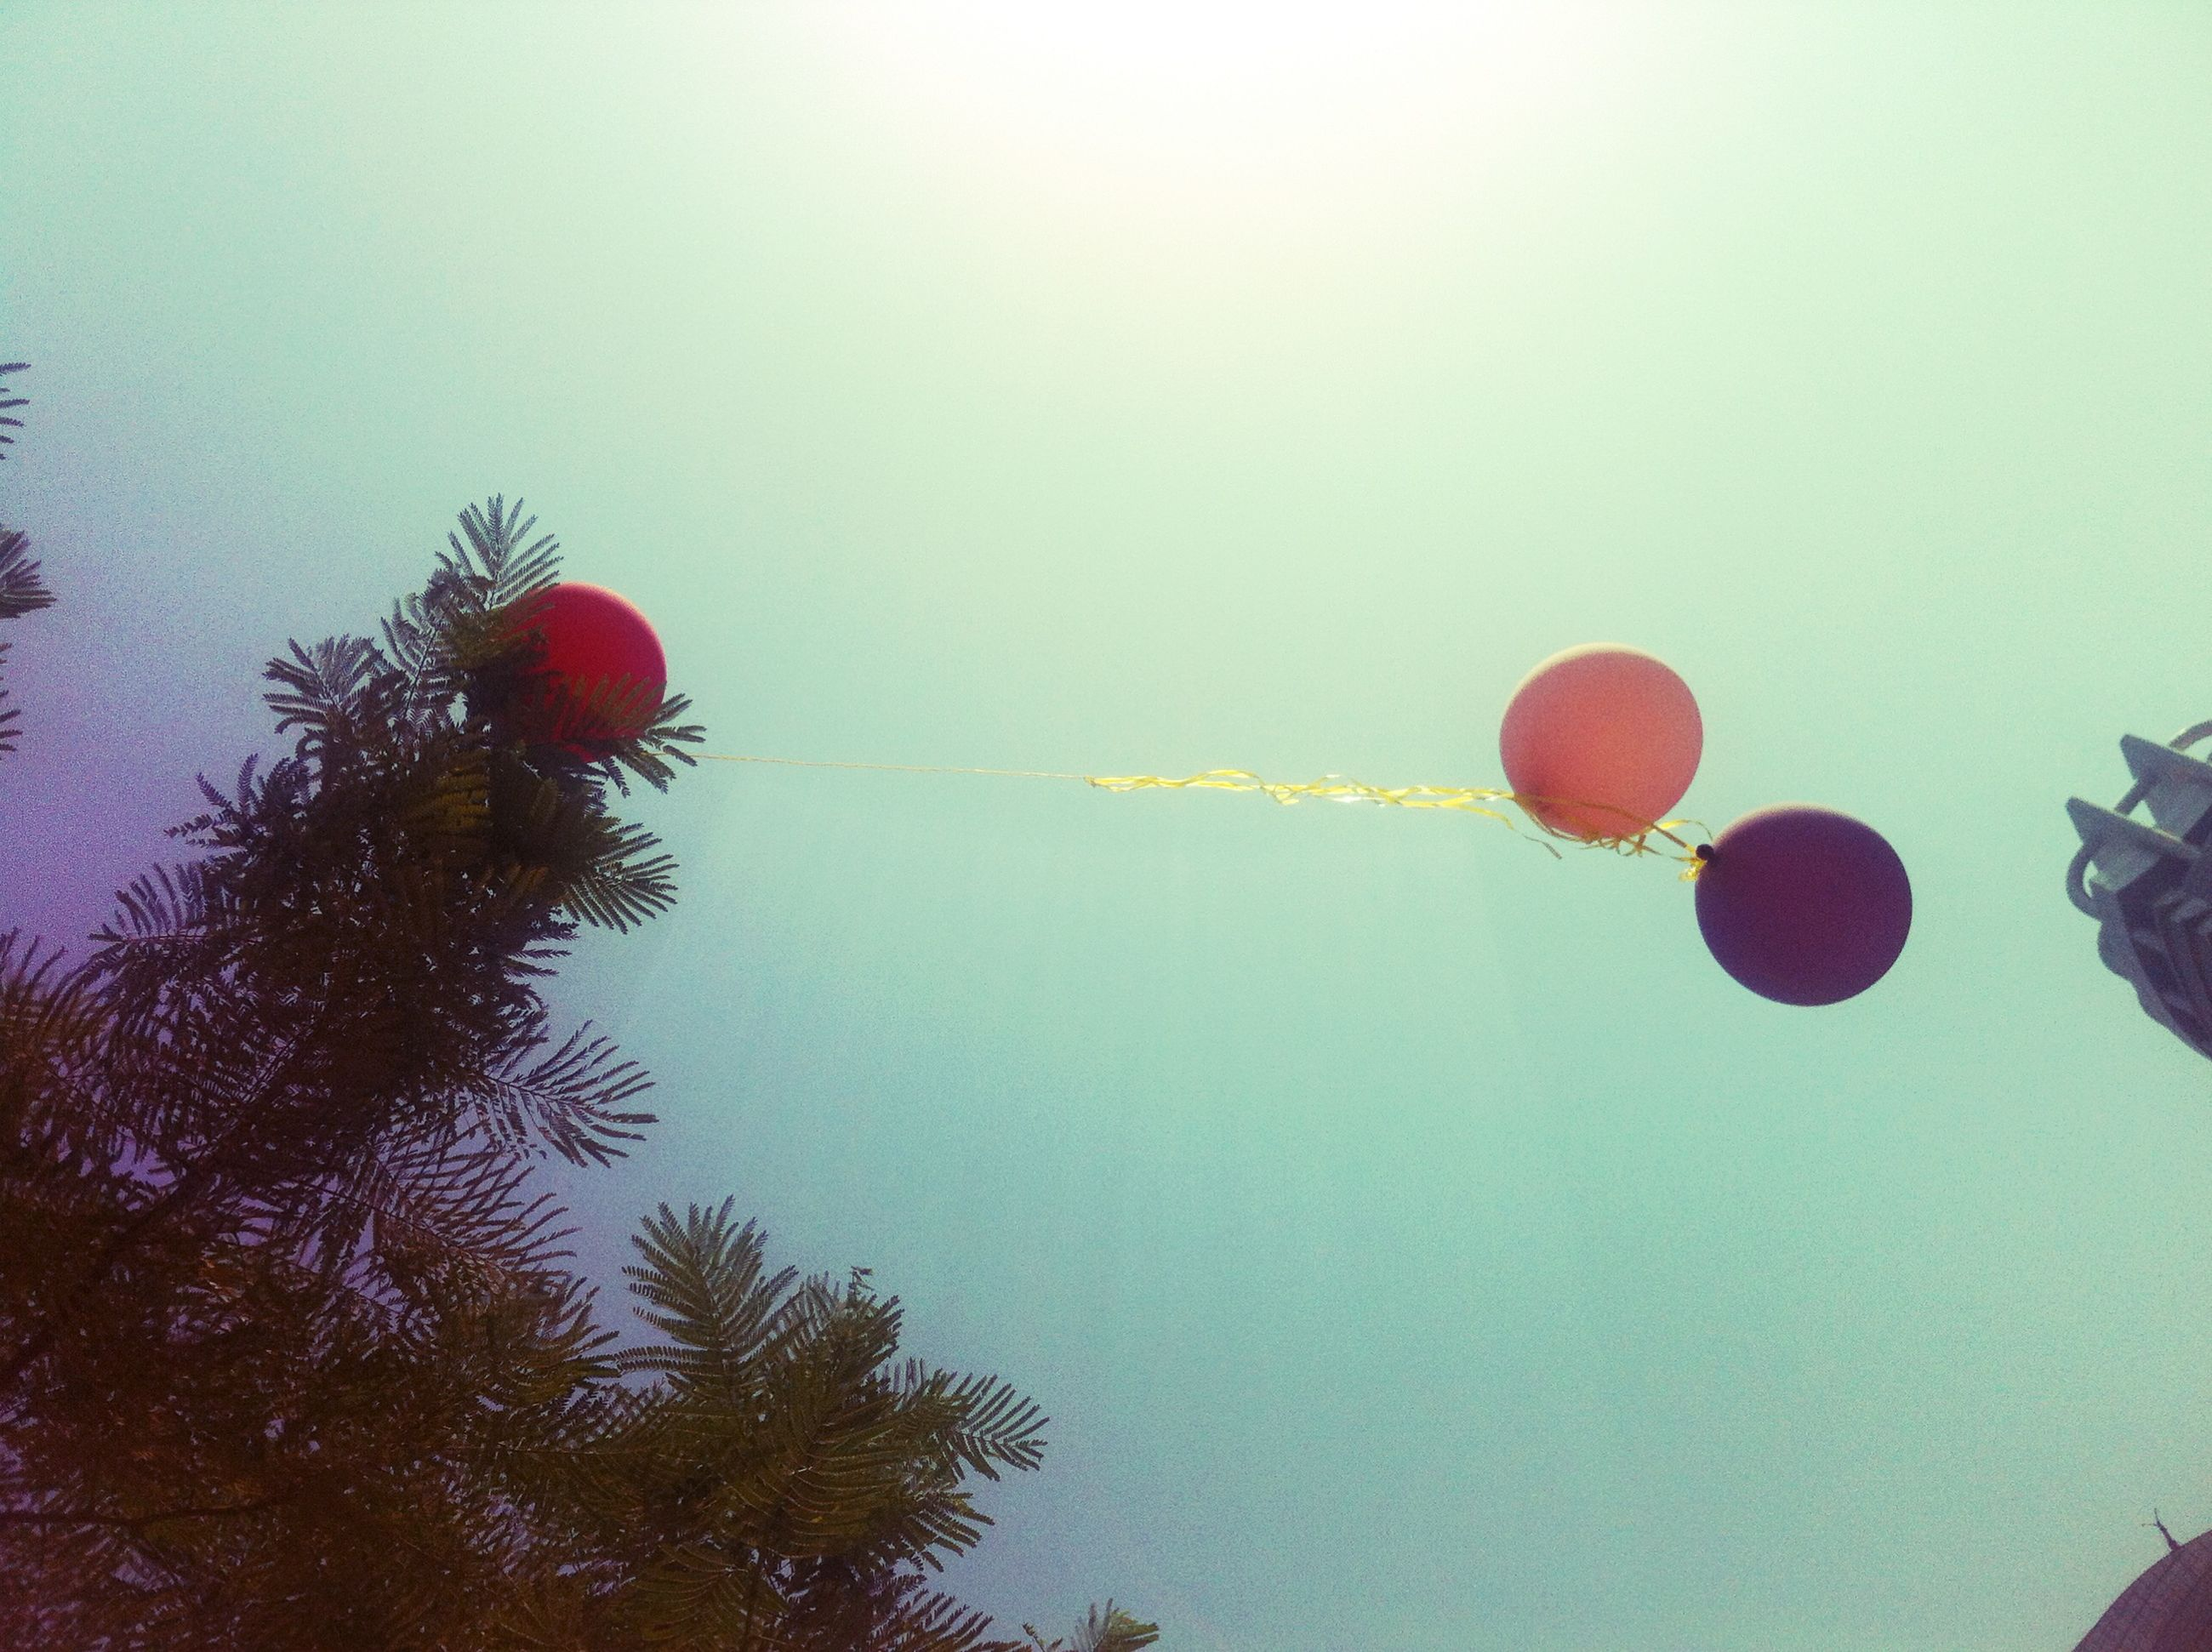 clear sky, tree, low angle view, copy space, red, flying, mid-air, sky, no people, outdoors, multi colored, celebration, bare tree, nature, hot air balloon, blue, hanging, day, balloon, transportation